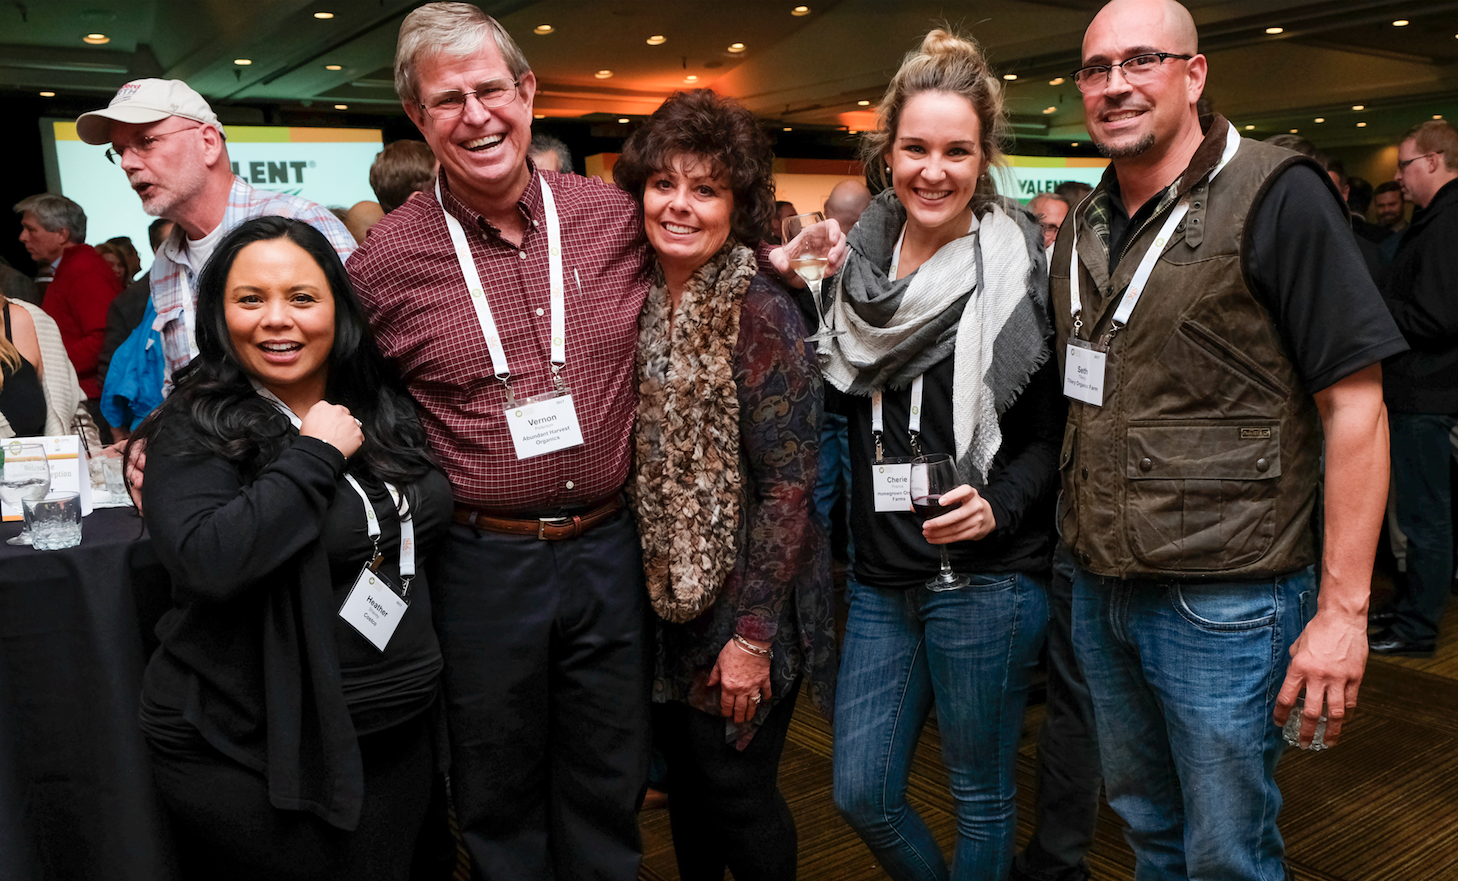 OGS Opening Reception, (from left to right) Heather Shavey - Costco, Vernon Peterson - Grower of the Year, Carol Peterson - Peterson Family Farms and Abundant Harvest Organic, Cherie France - Homegrown Organic Farms, Seth Tillery - Tillery Organic Farms